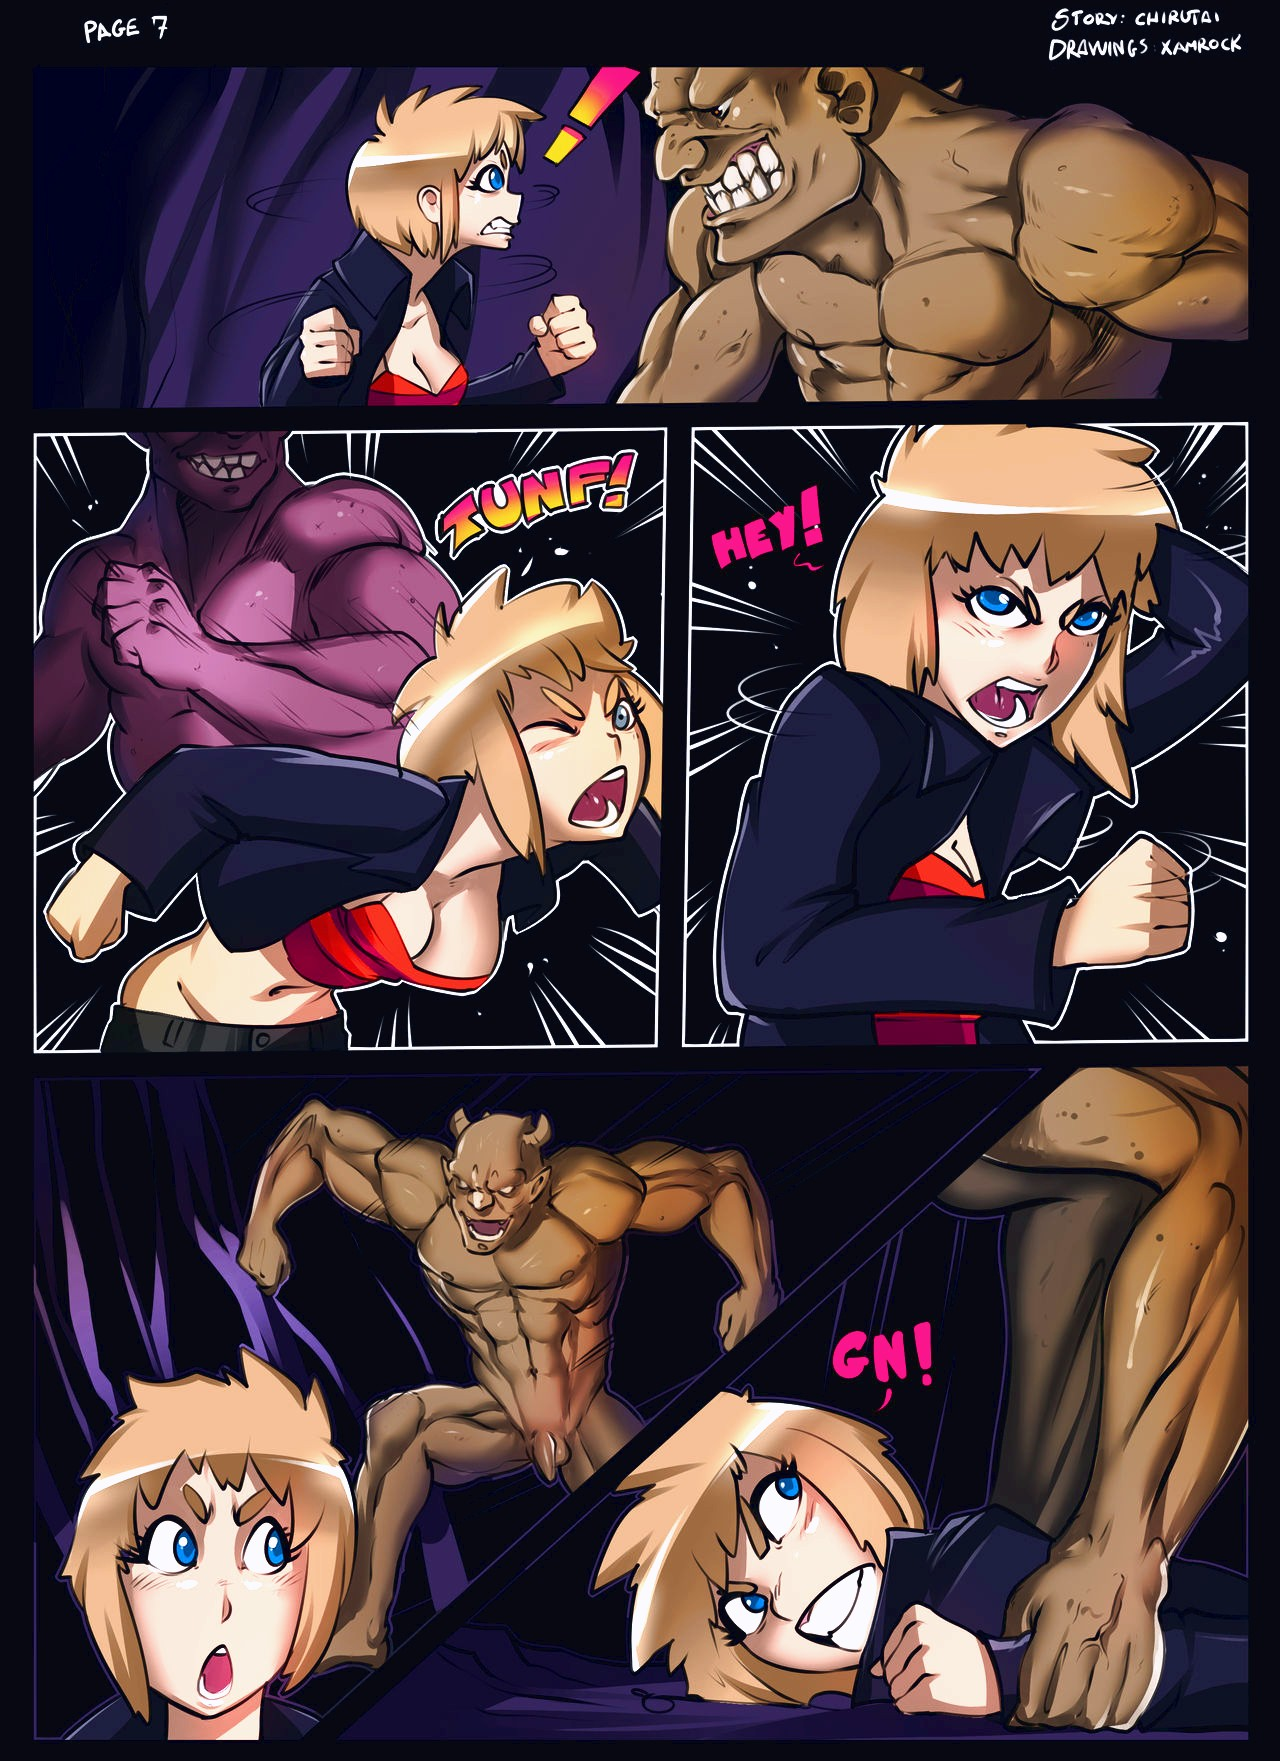 Tia in a new hell porn comic page 007